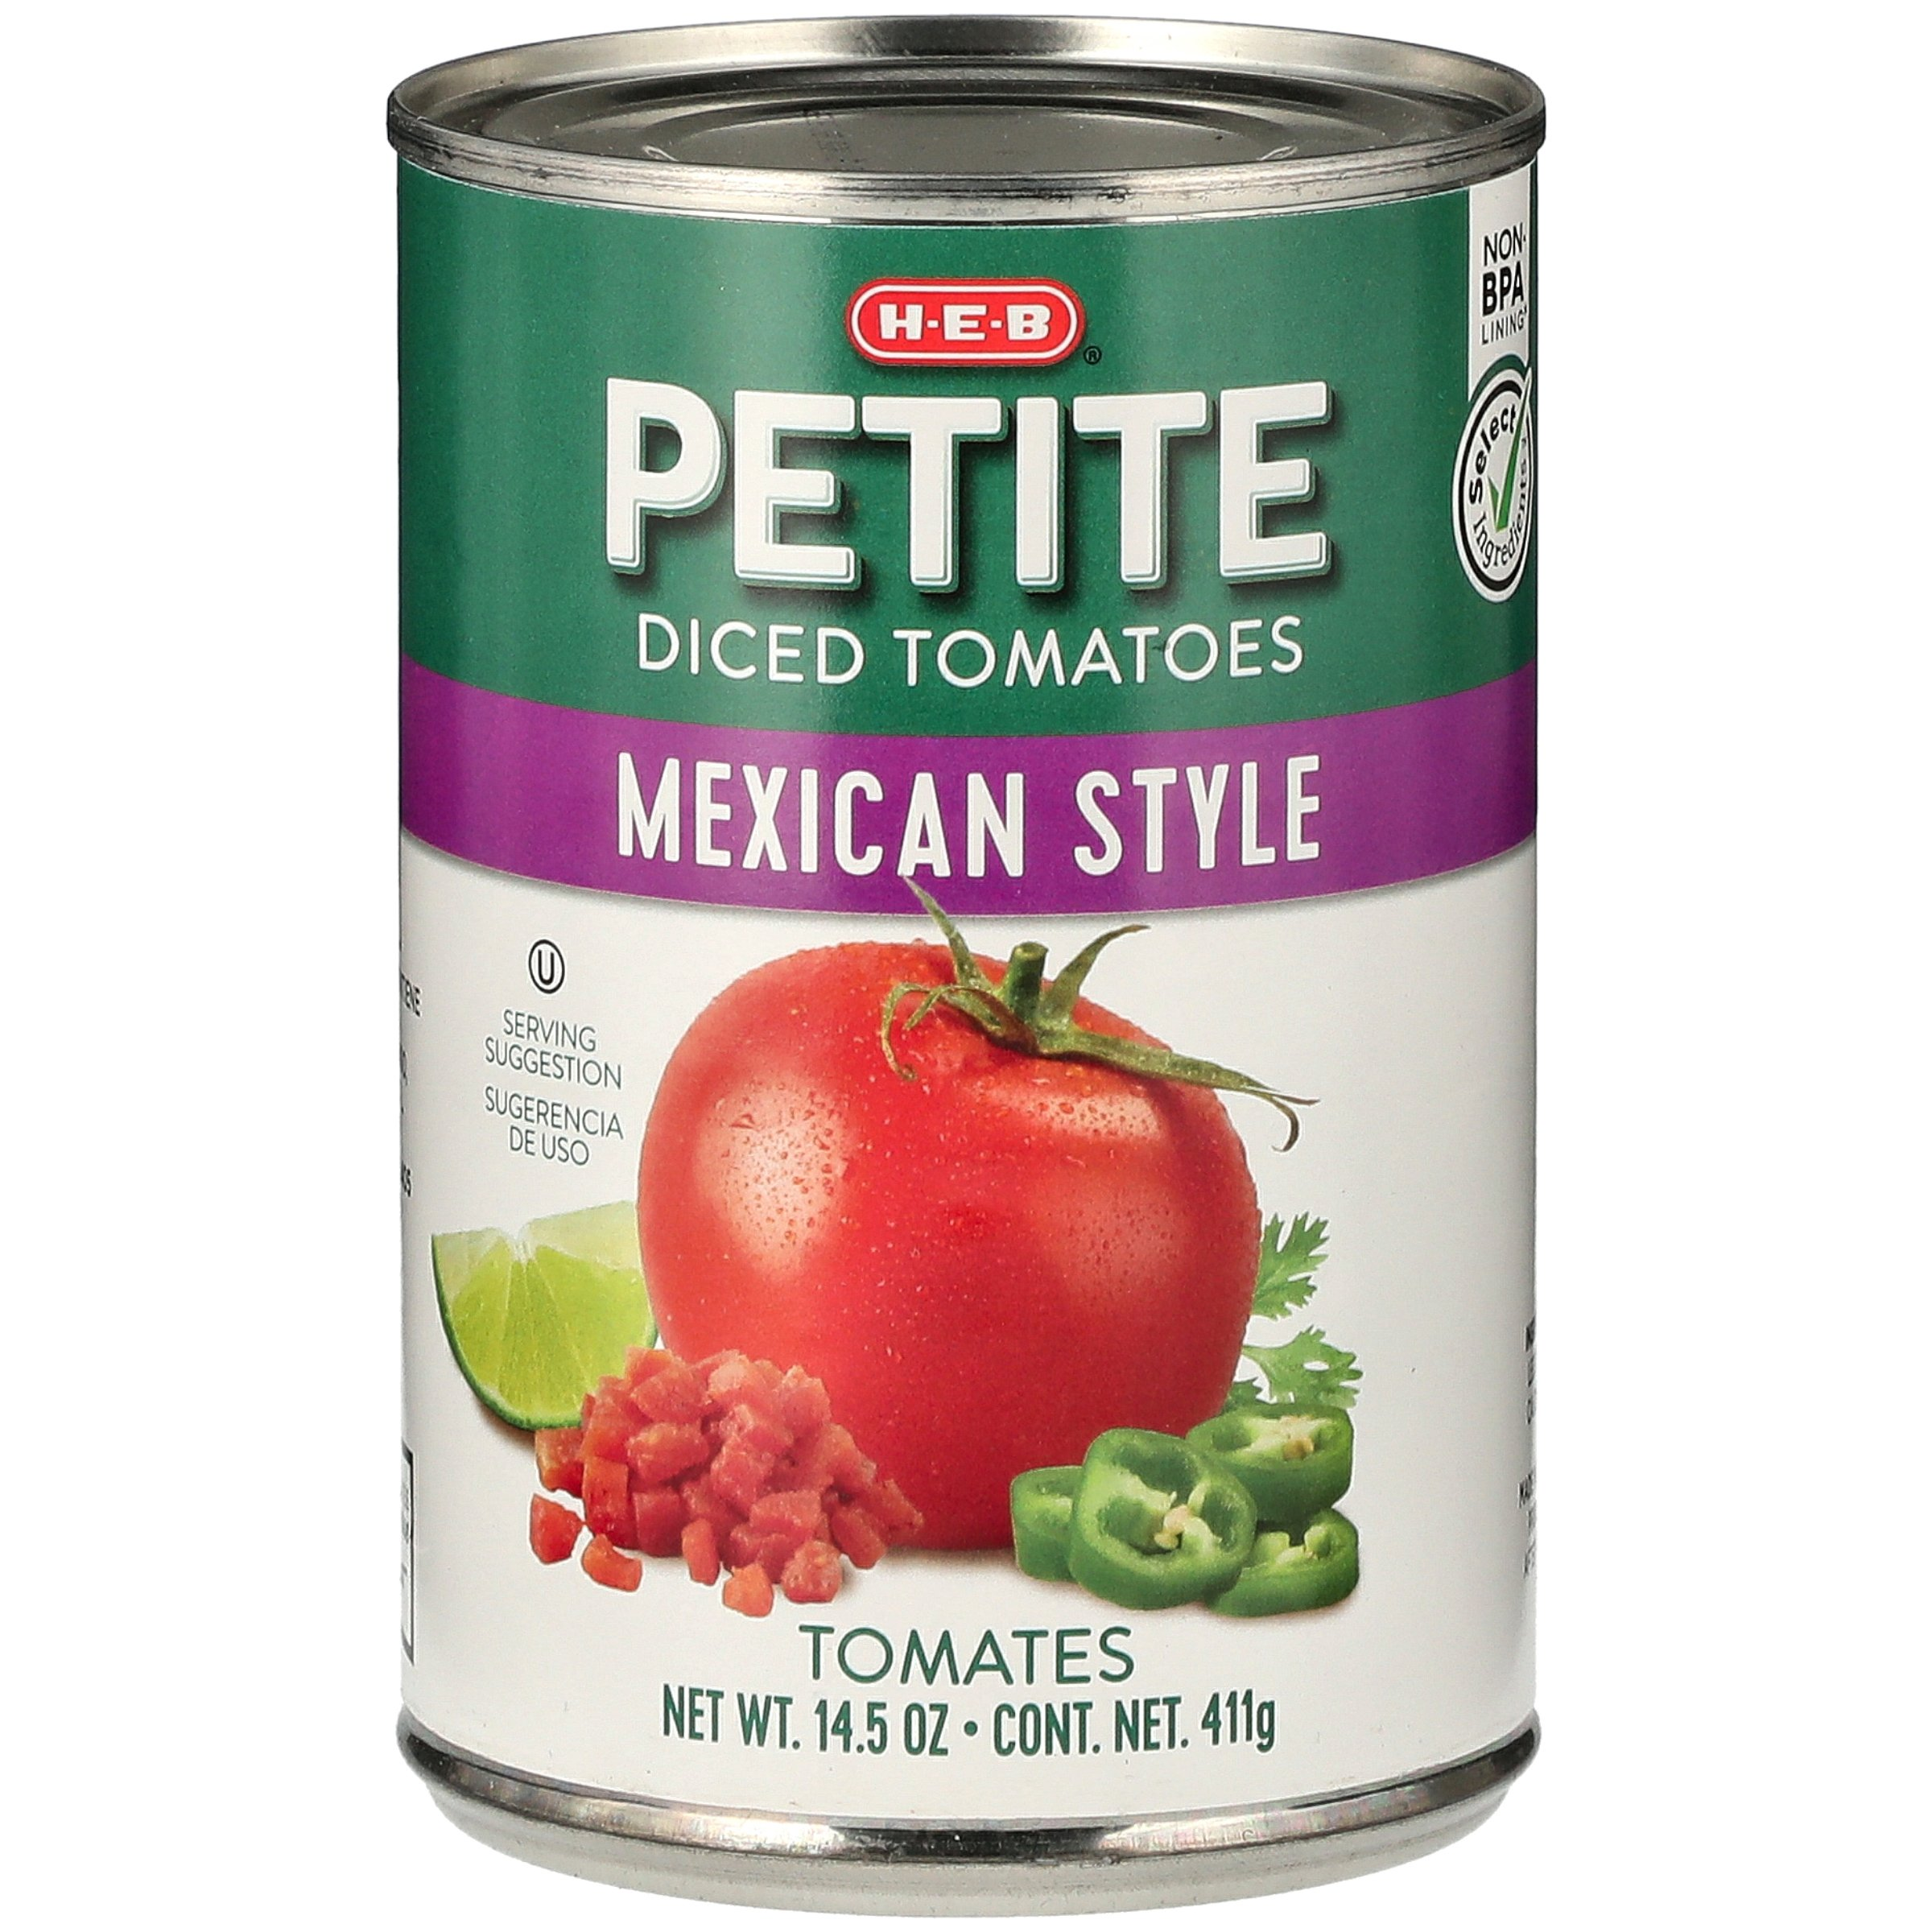 H E B Select Ingredients Mexican Style Petite Diced Tomatoes Shop Vegetables At H E B